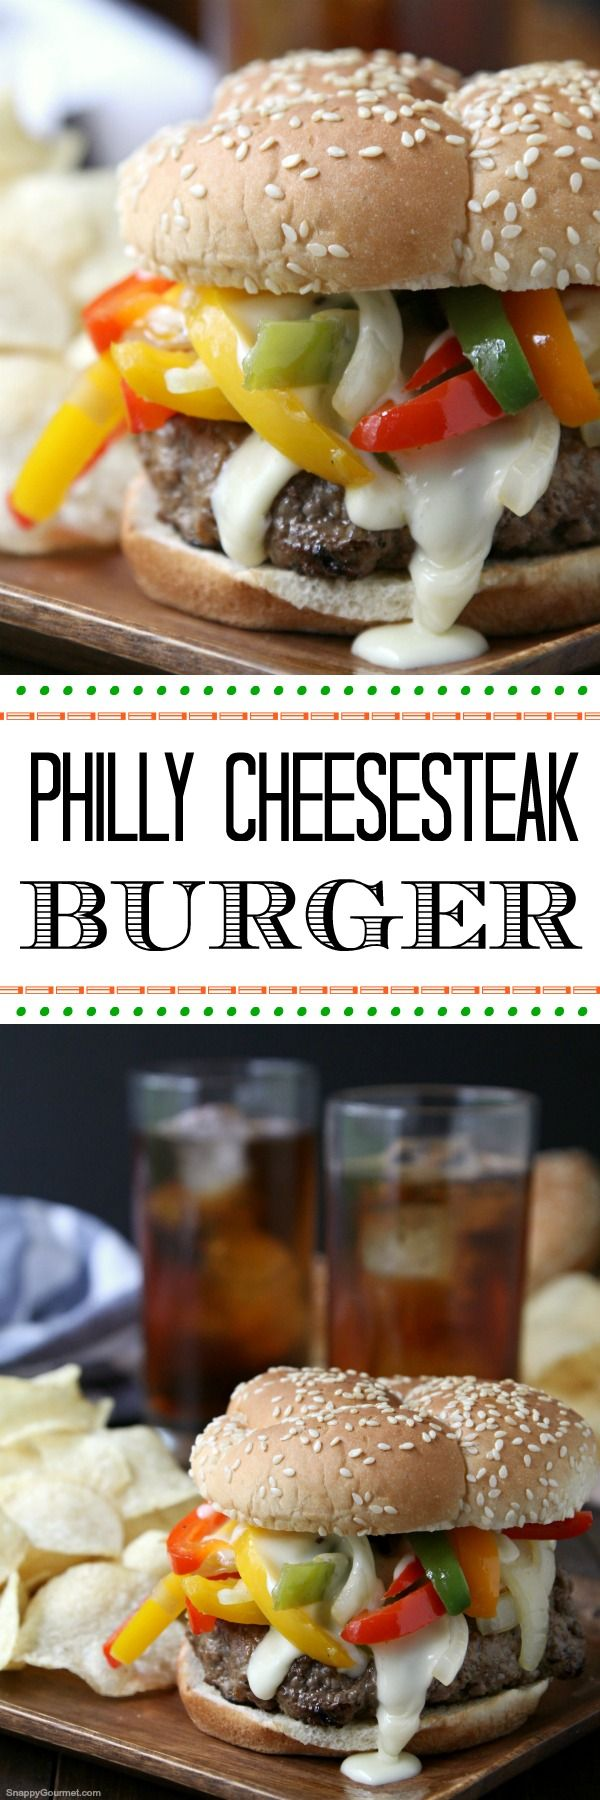 Philly Cheesesteak Burger - an easy burger recipe great for Memorial Day weekend, Father's Day, 4th of July or summer! #ad SnappyGourmet.com